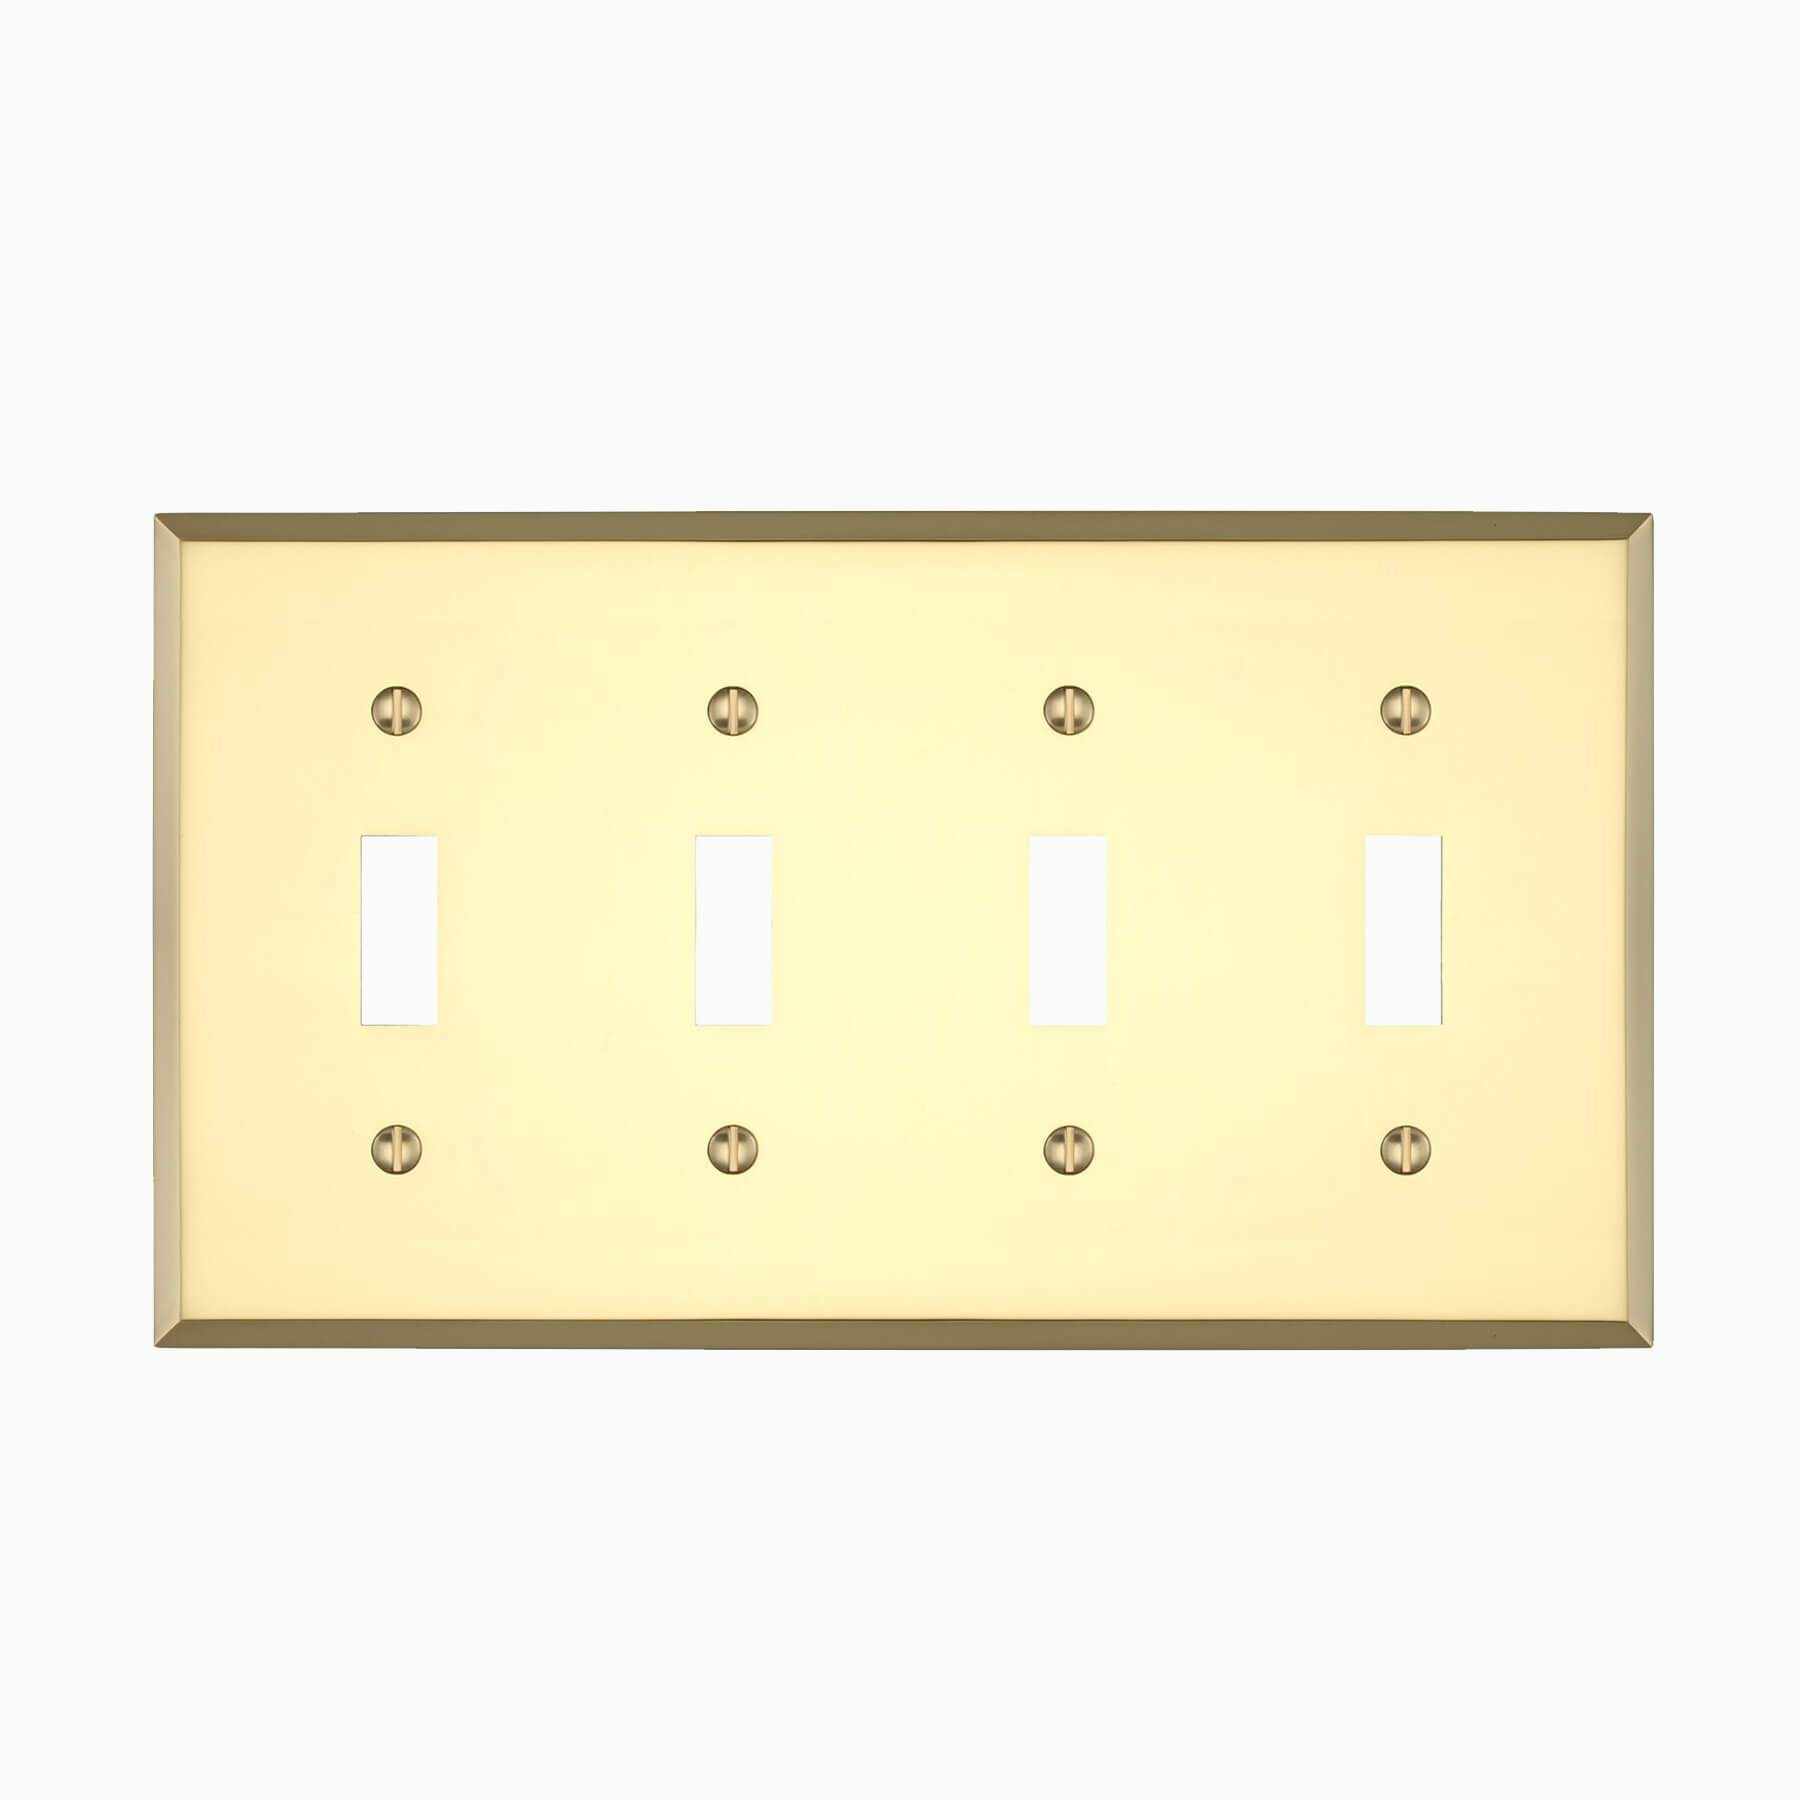 Graham Quad Light Switch Cover - Wall Mounted Electrical Switch Plate